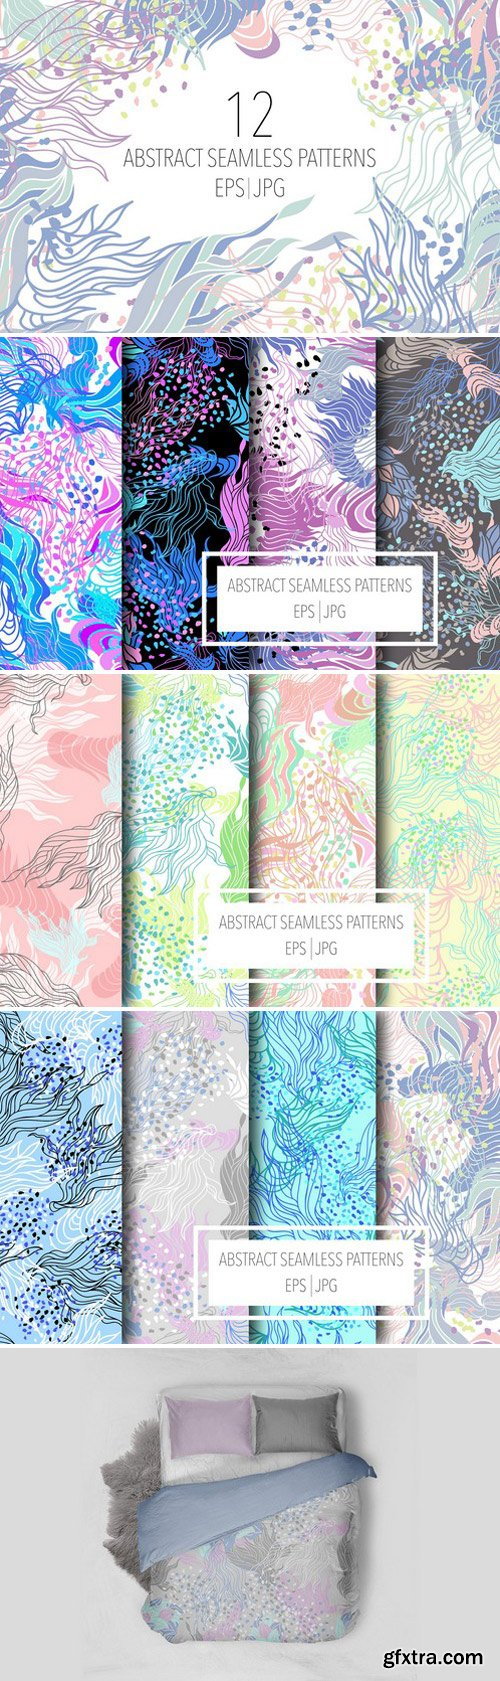 CM - 12 Abstract seamless patterns 1566321